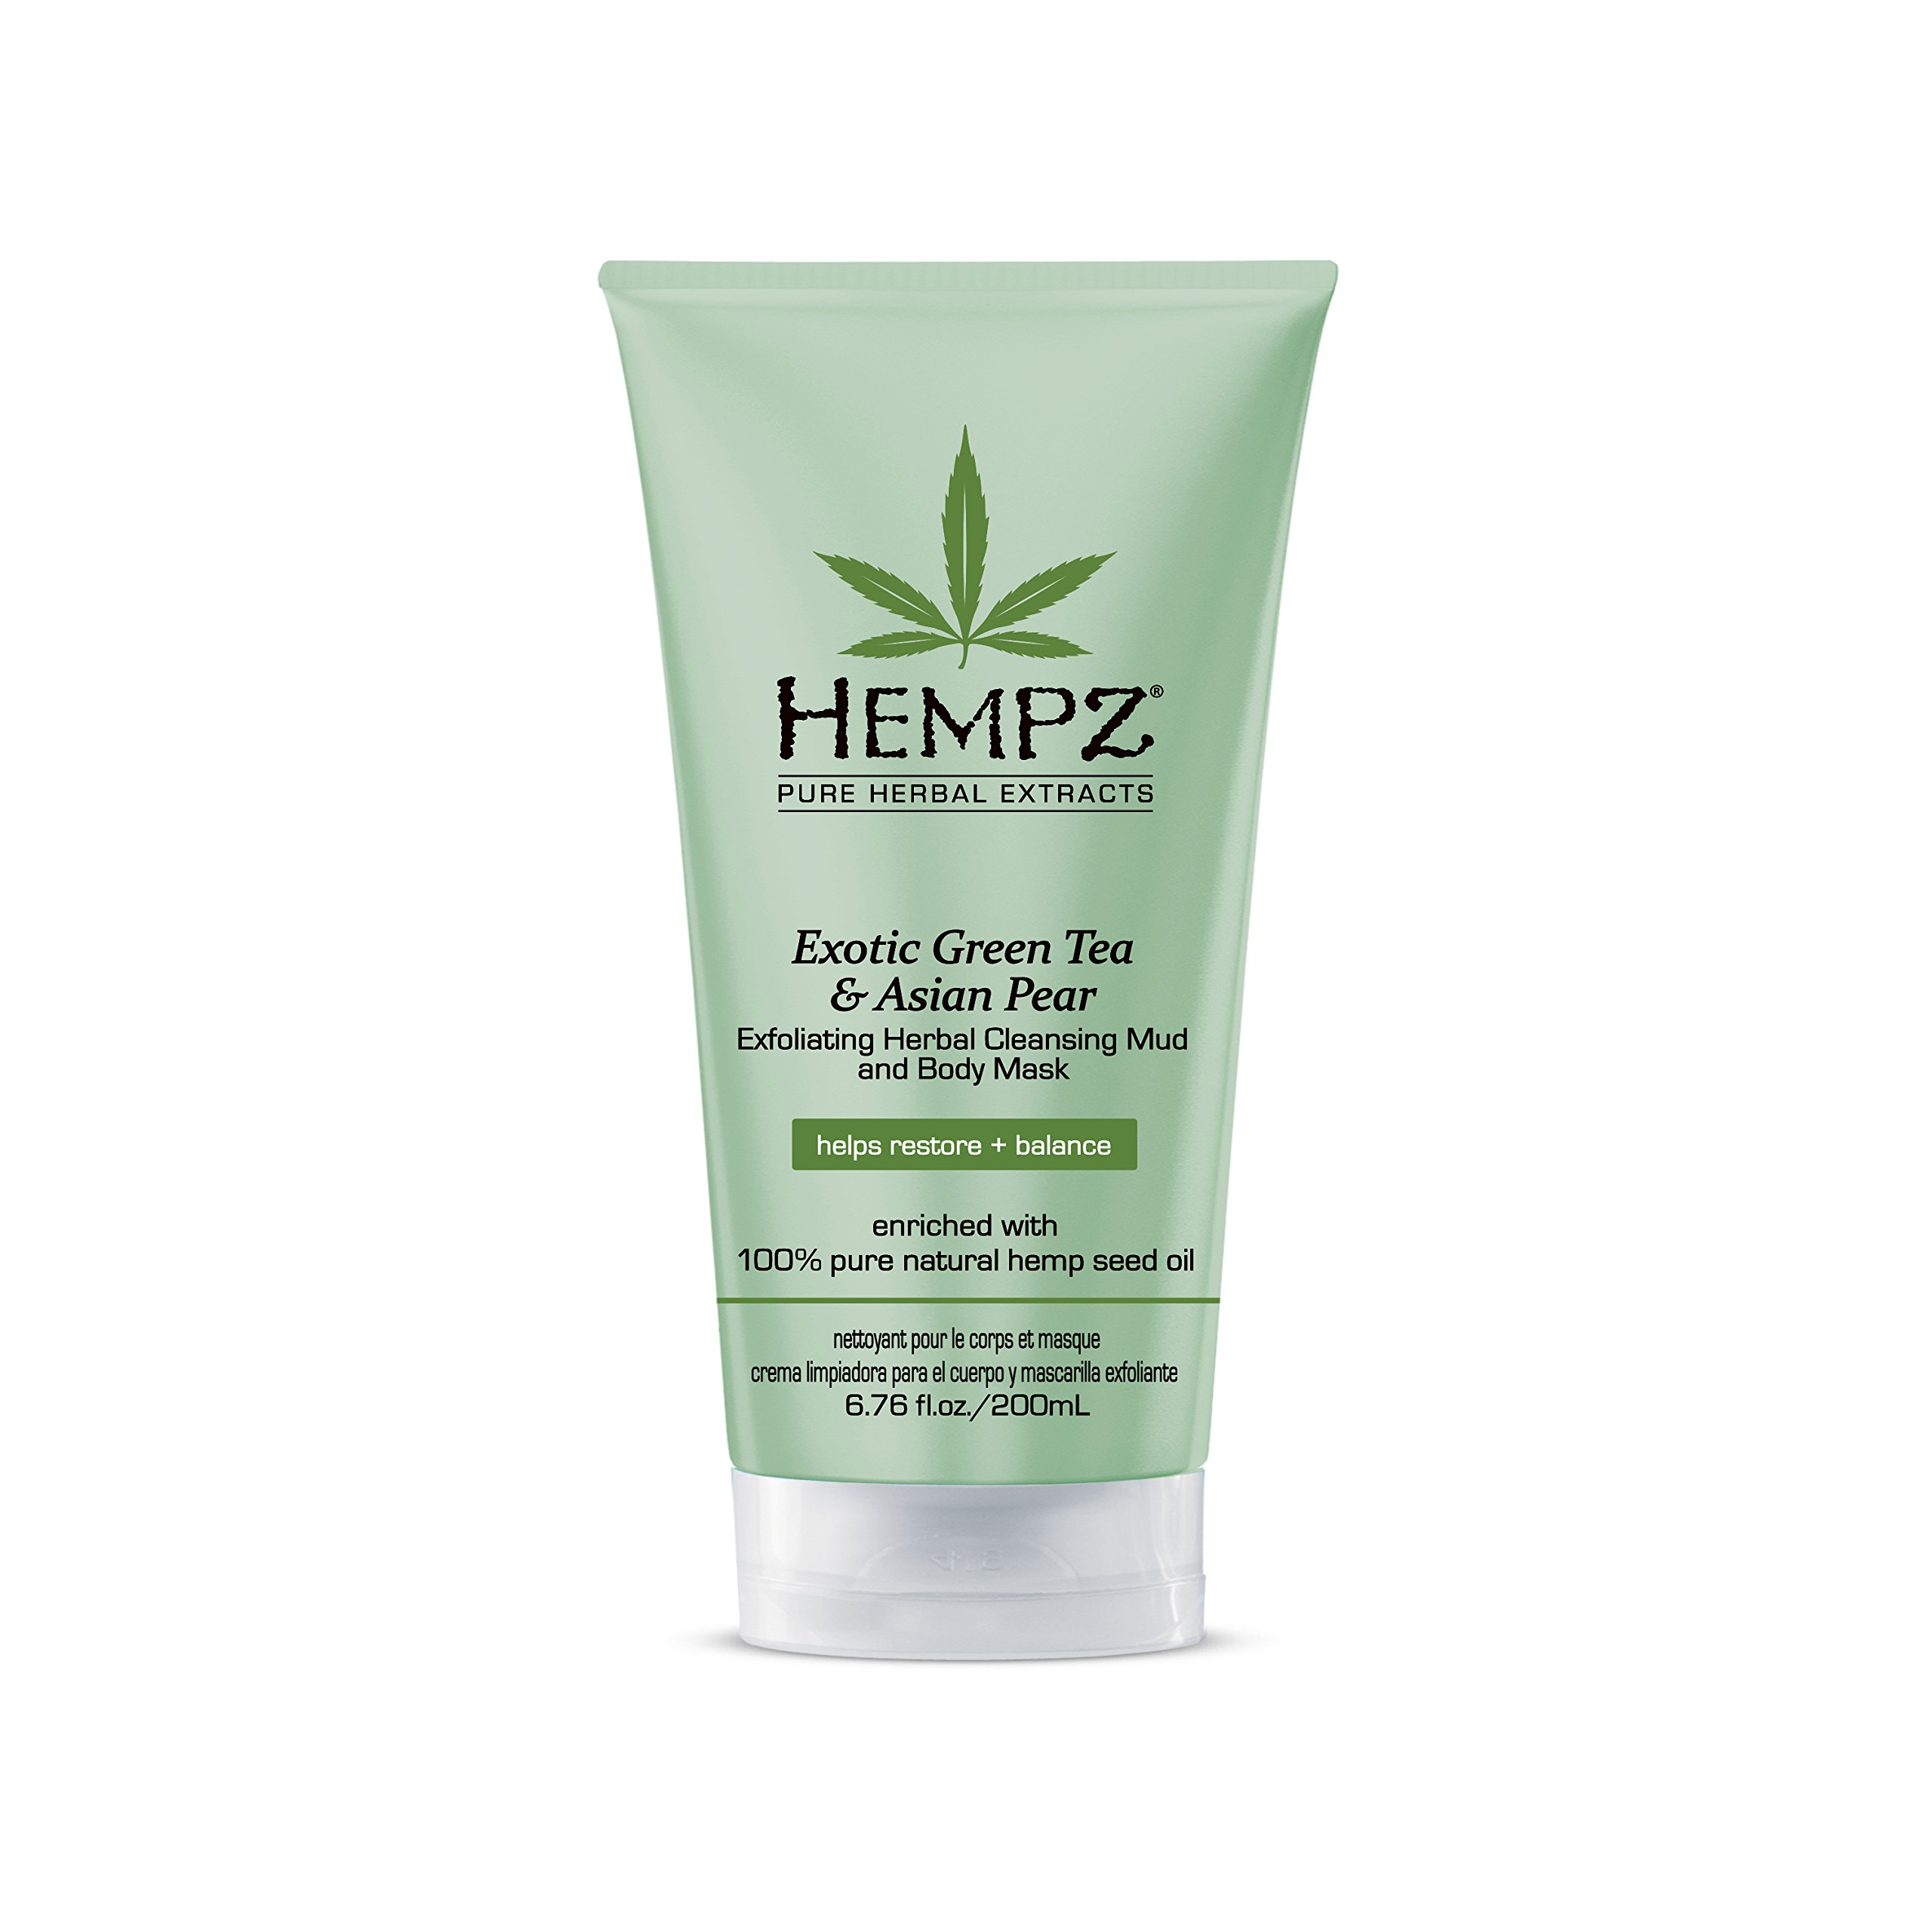 Hempz Exfoliating Herbal Cleansing Mud and Body Mask, Light Green, Exotic Green Tea/Asian Pear, 6.76 Fluid Ounce by Hempz